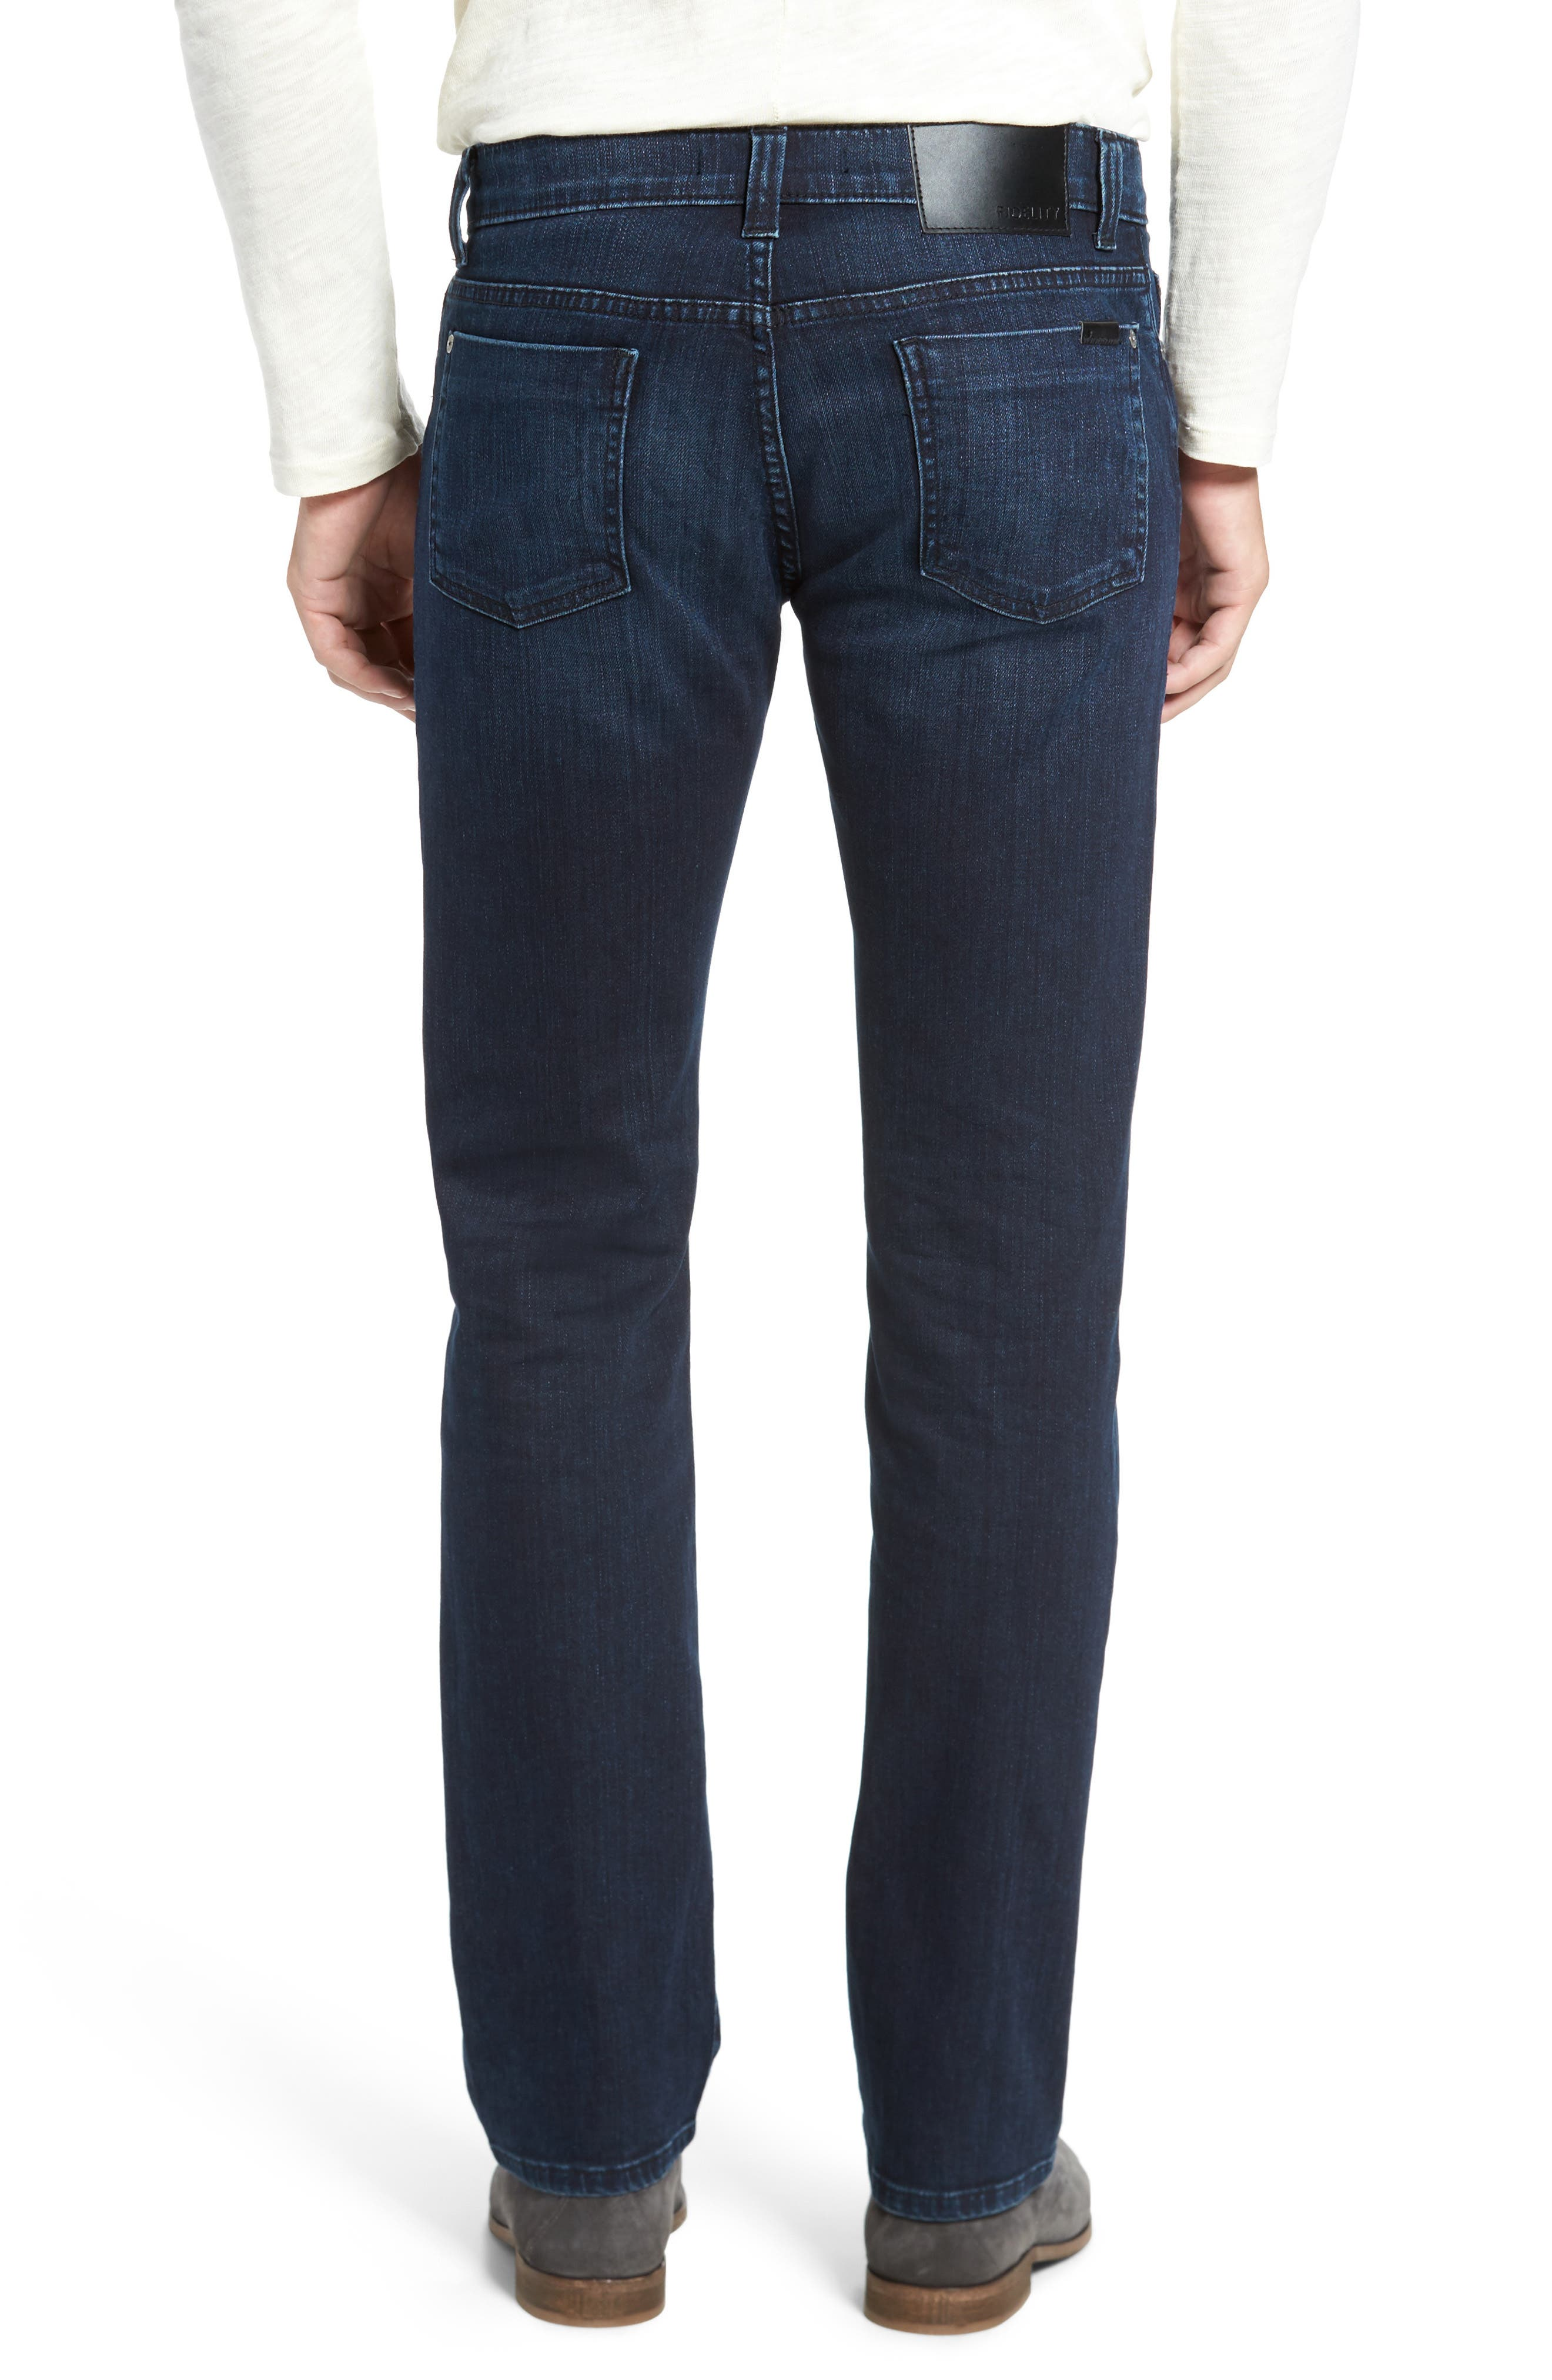 5011 Relaxed Fit Jeans,                             Alternate thumbnail 2, color,                             Black On Blue